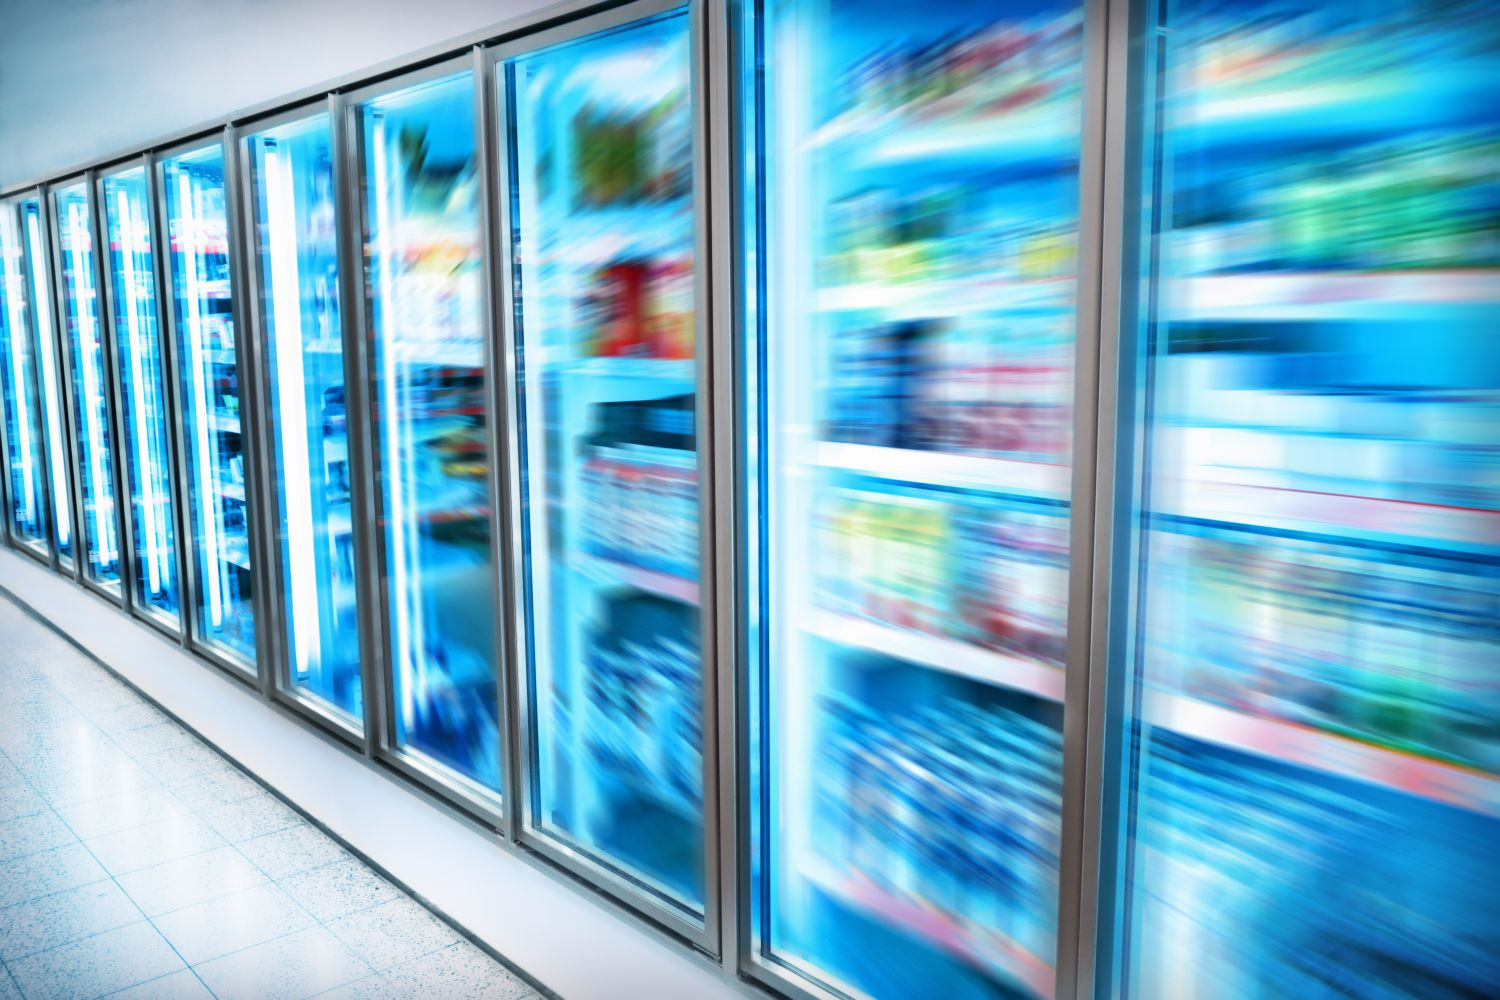 Image of refrigeration units in a commercial environement